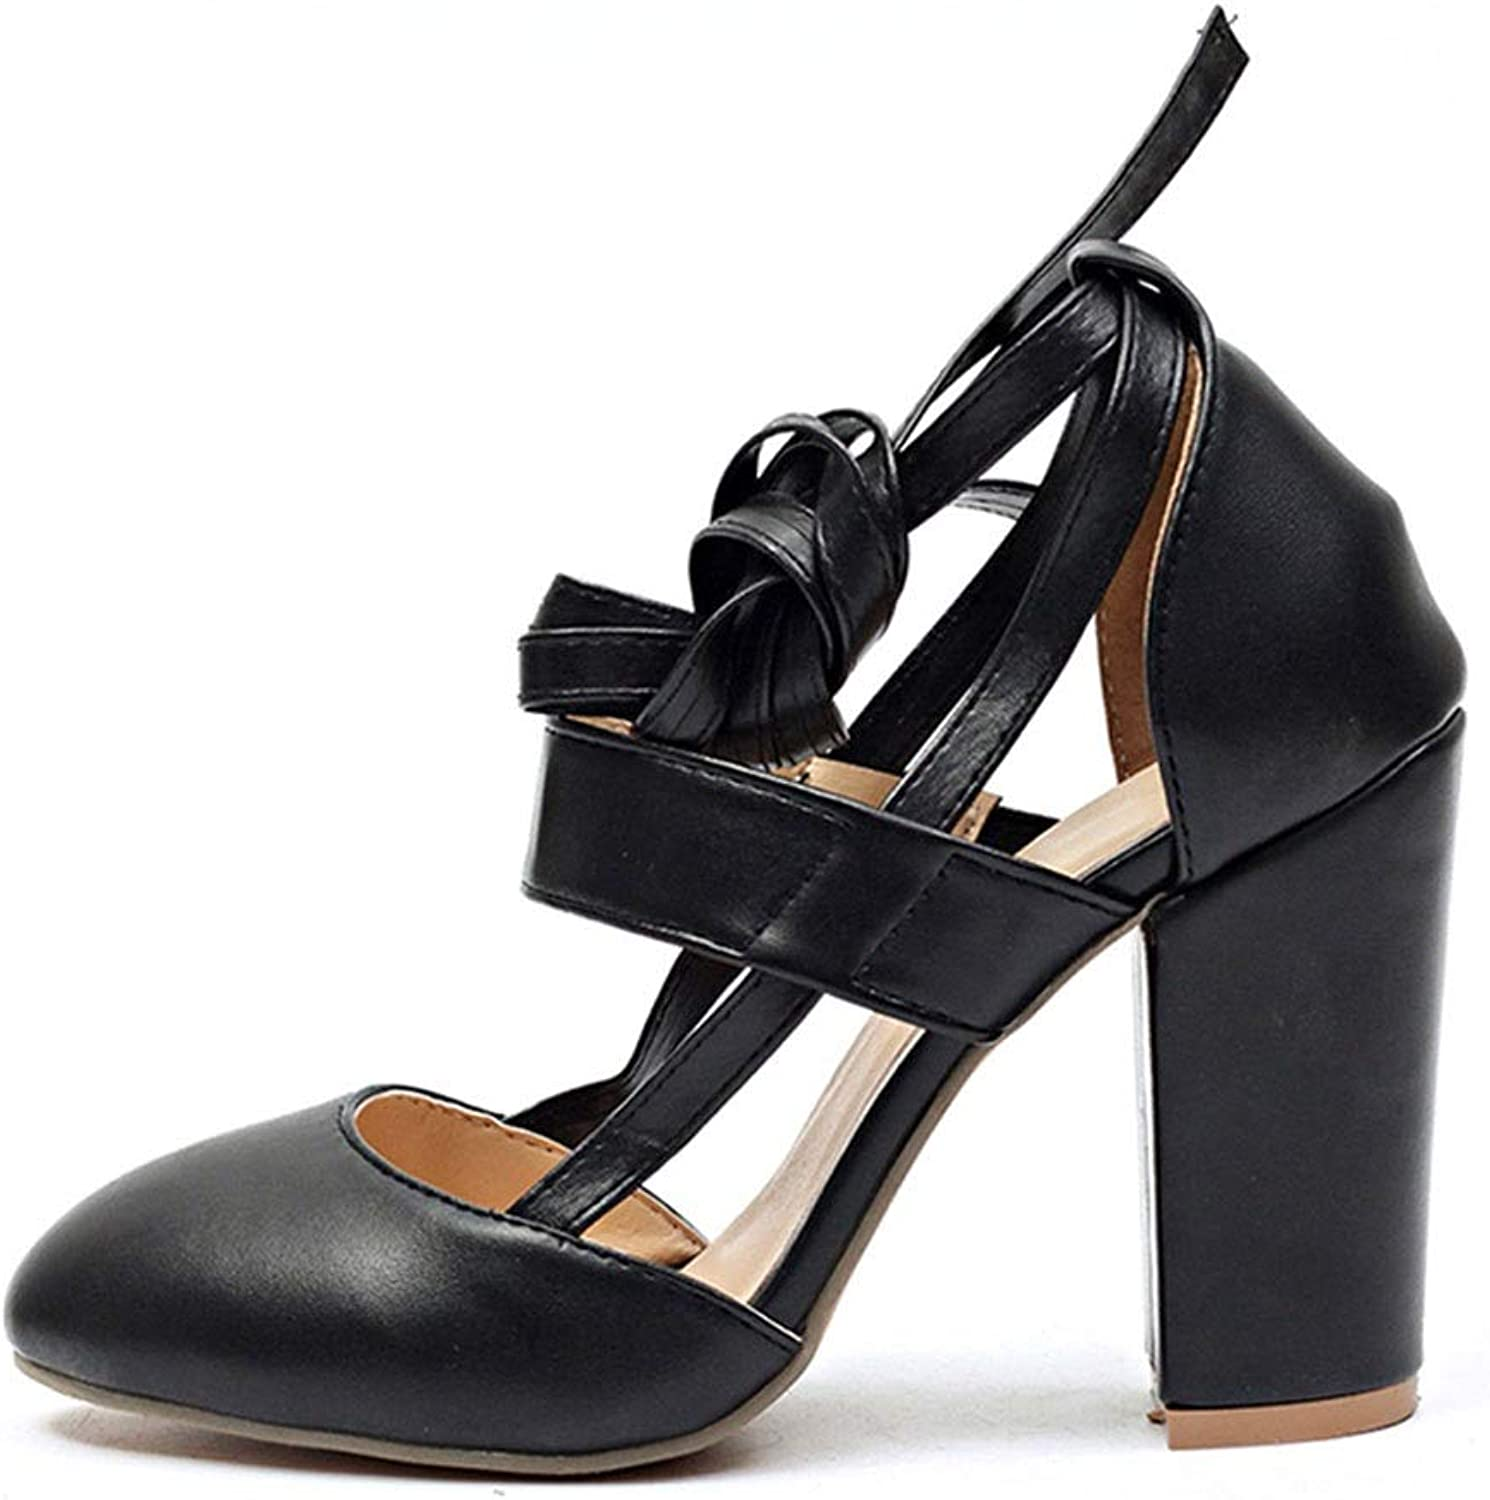 Women's High Heels - Cute Round Head shoes Comfortable Thick with Sandals Wedding shoes (color   Black, Size   36)